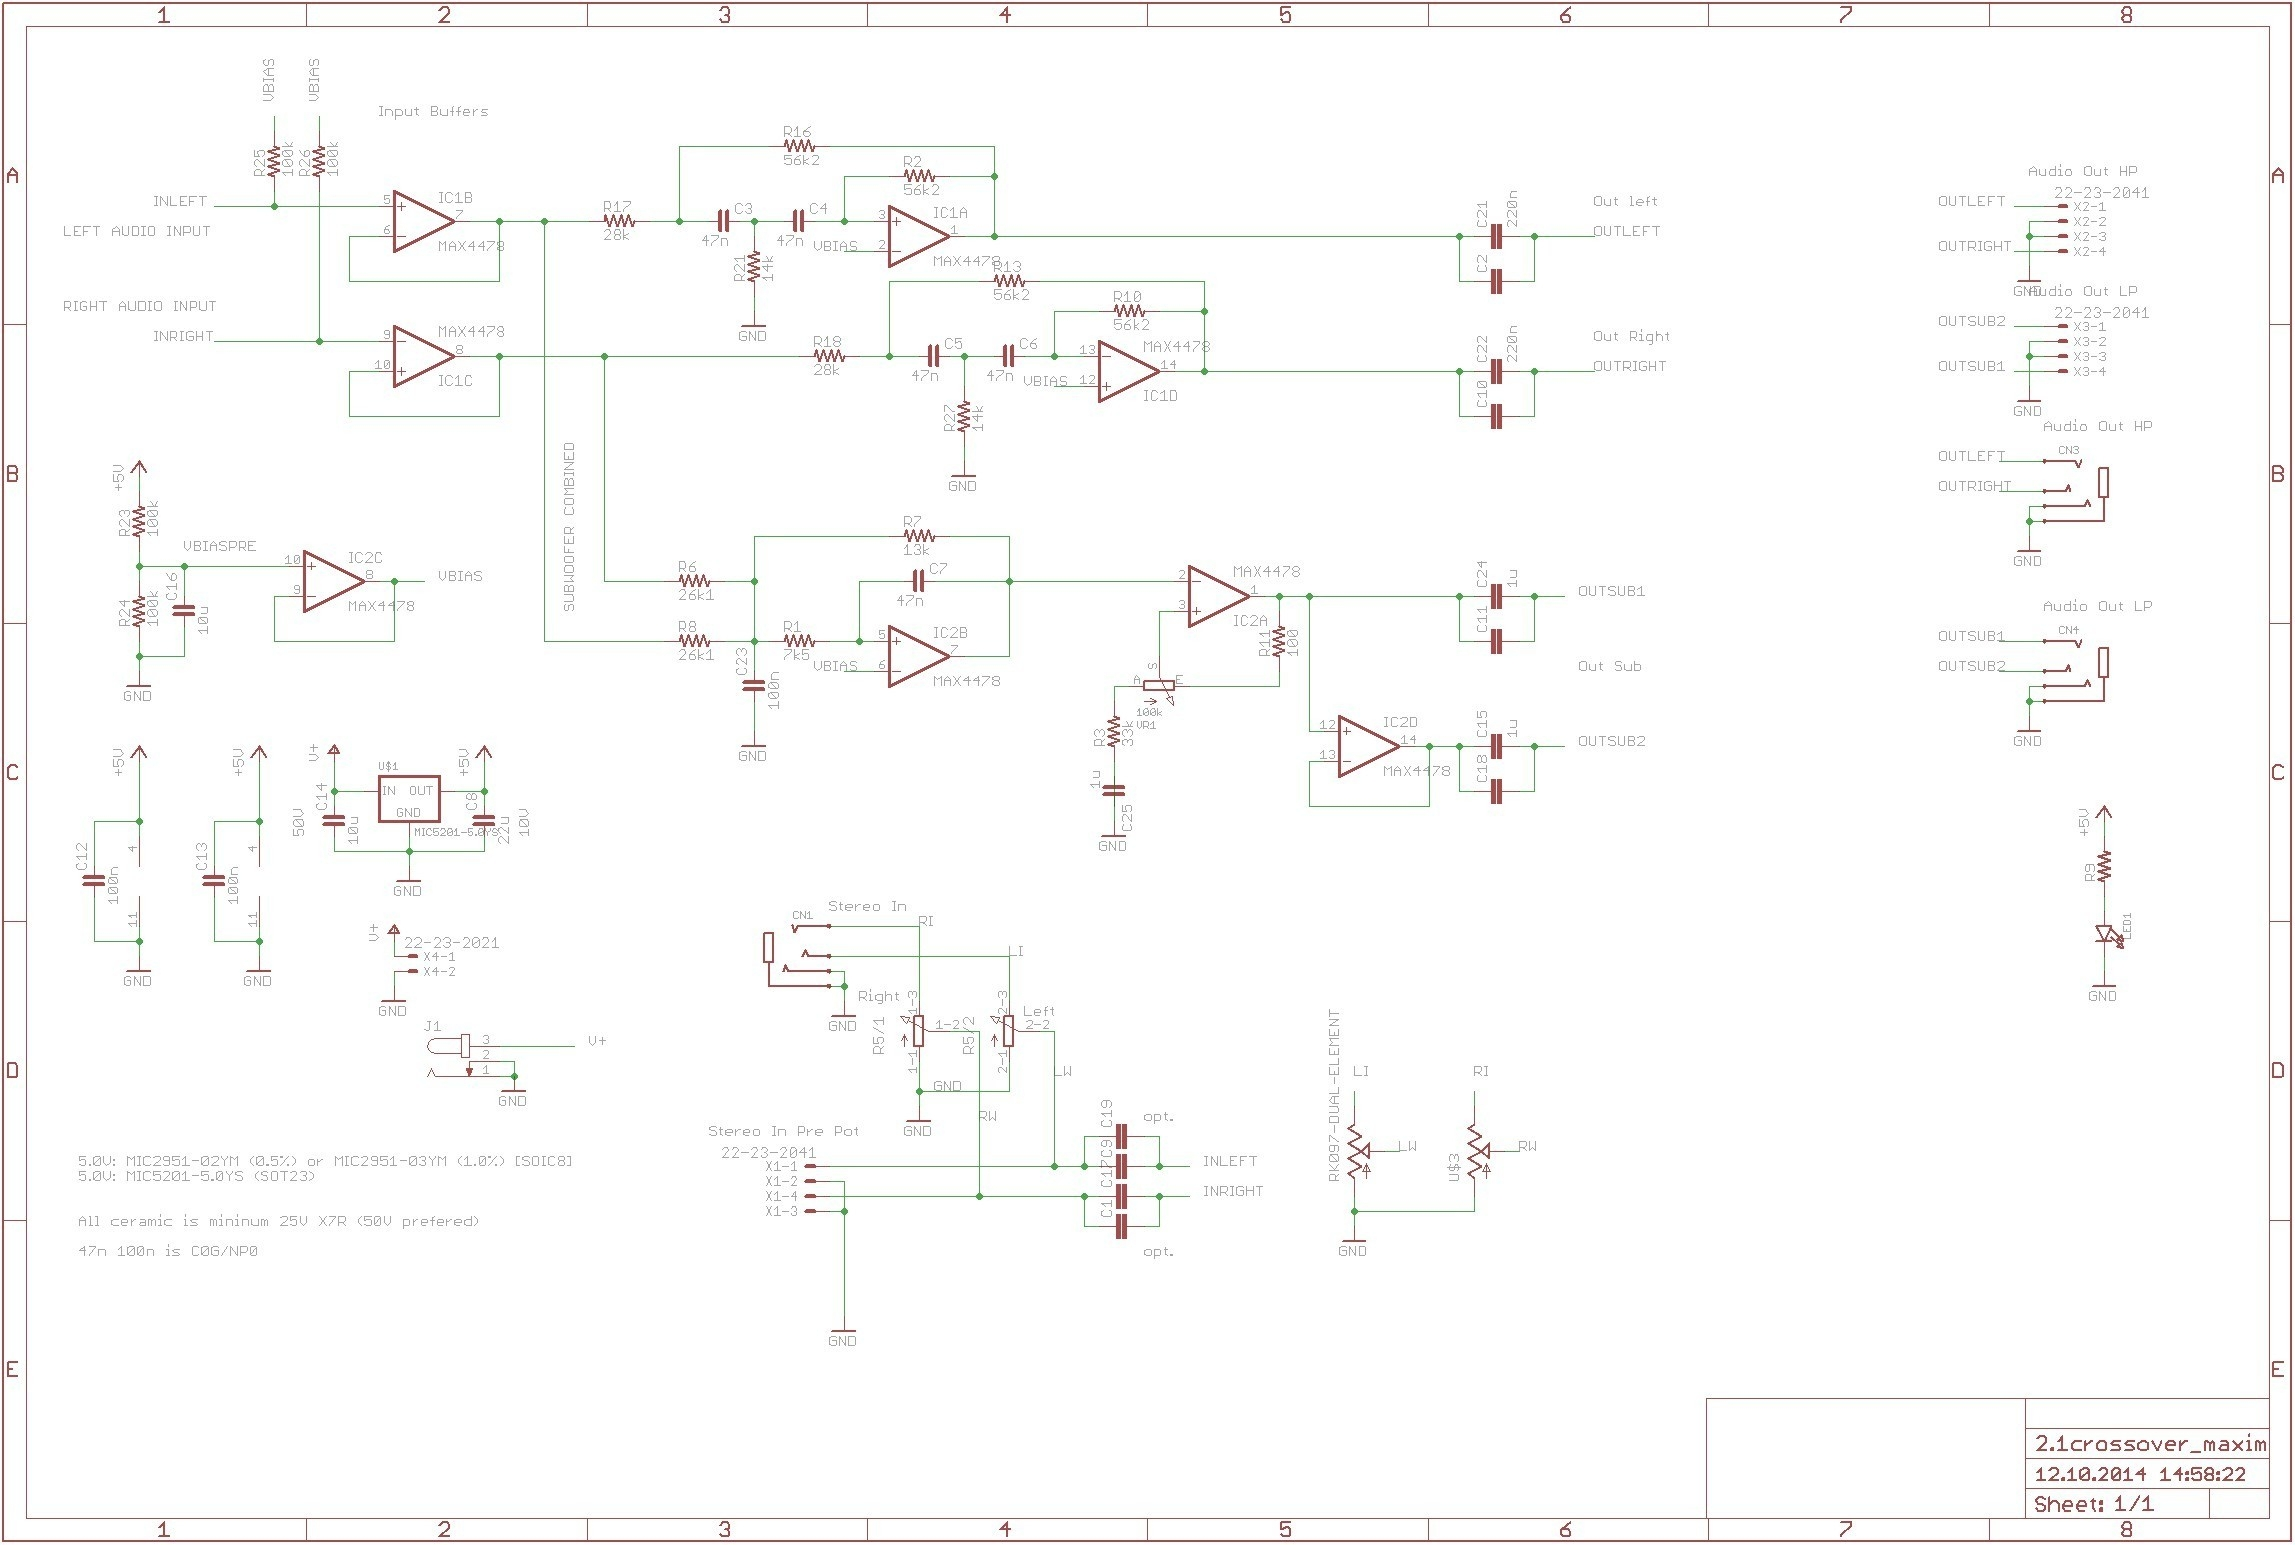 kitchen electrical wiring diagram Collection-Kitchen Electrical Wiring Diagram Aktive Crossoverfrequenzweiche Mit Max4478 360customs Crossover Schematic Rev 0d Wiring Lighting 20-e